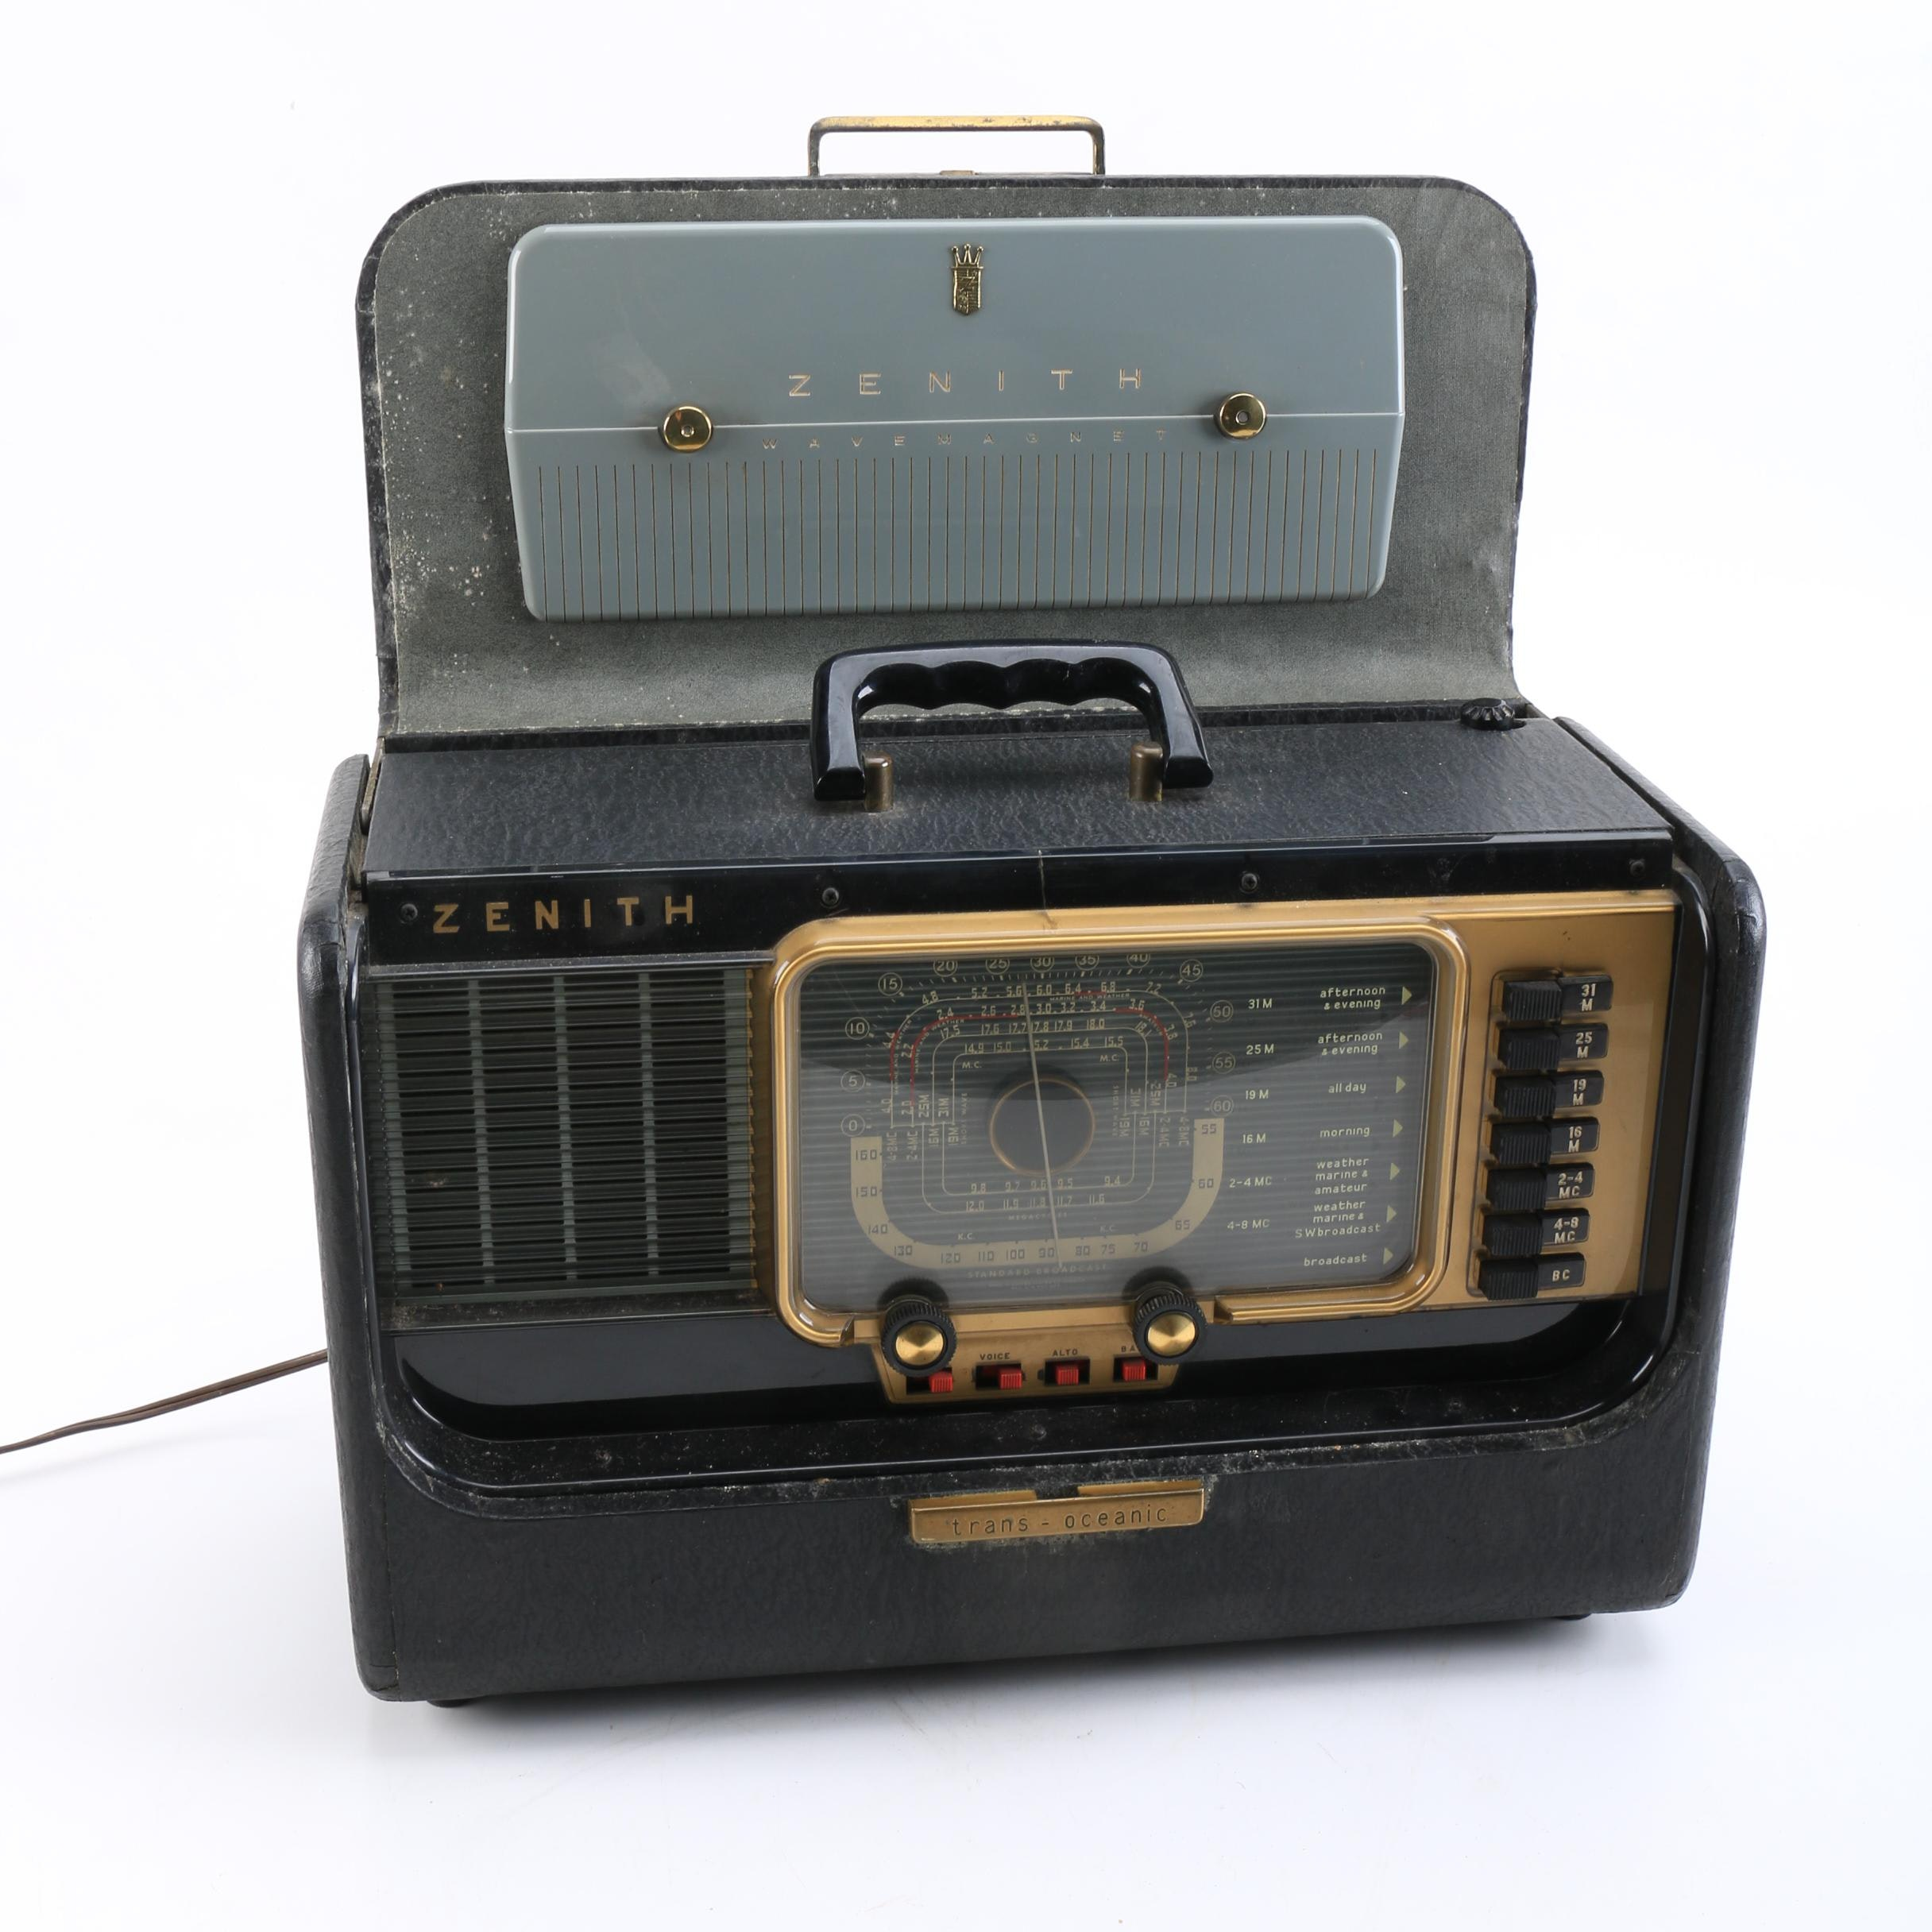 Zenith Trans-Oceanic Radio with Carrying Case